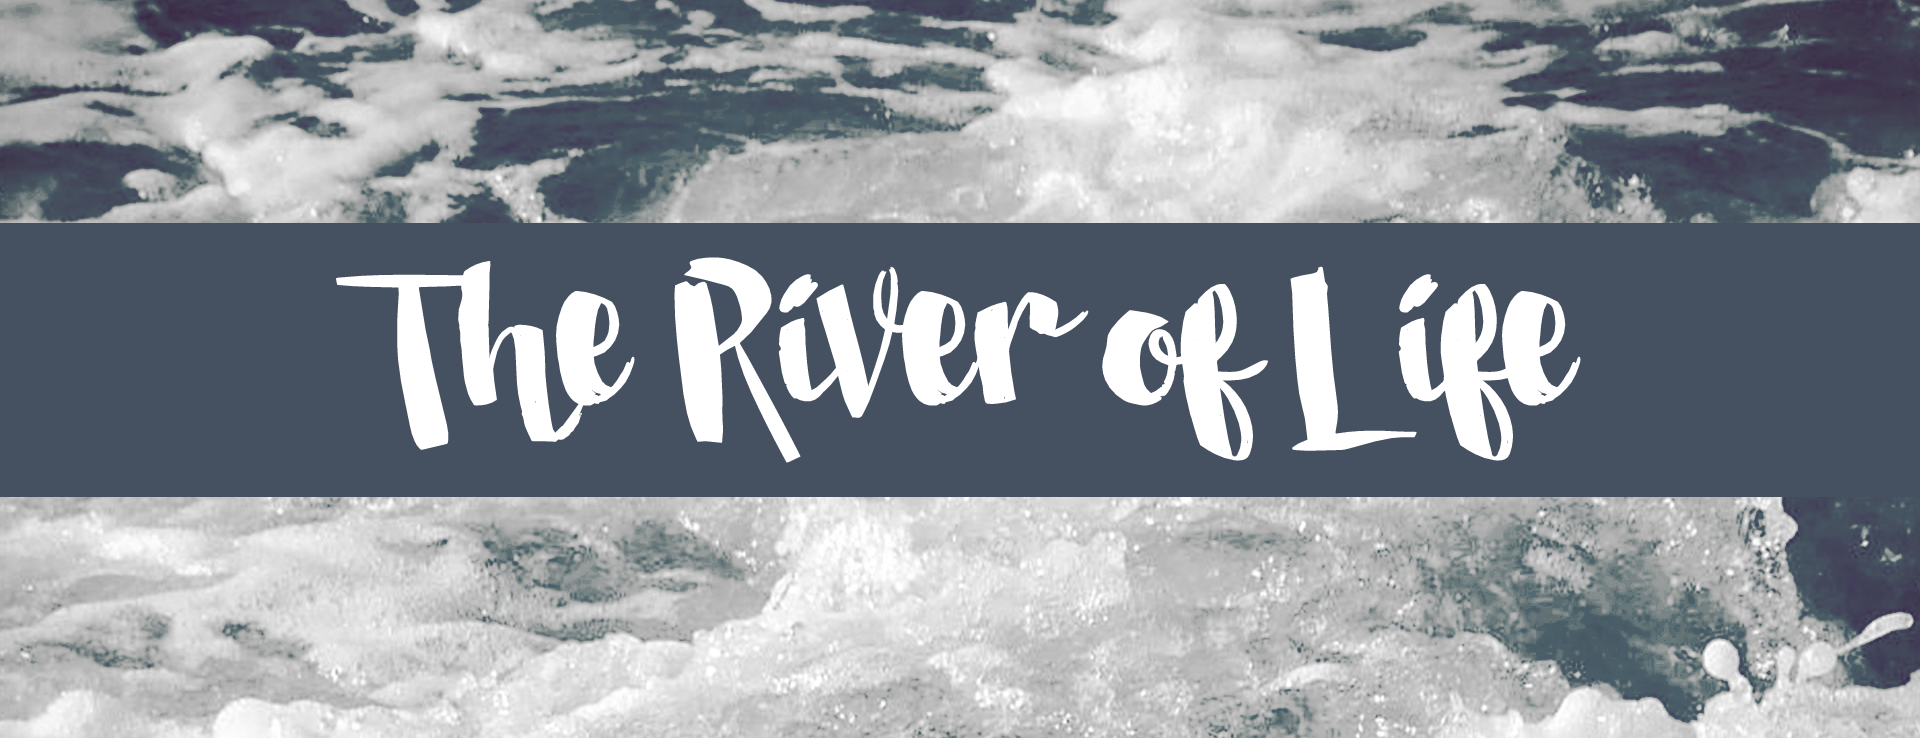 riveroflifebox1